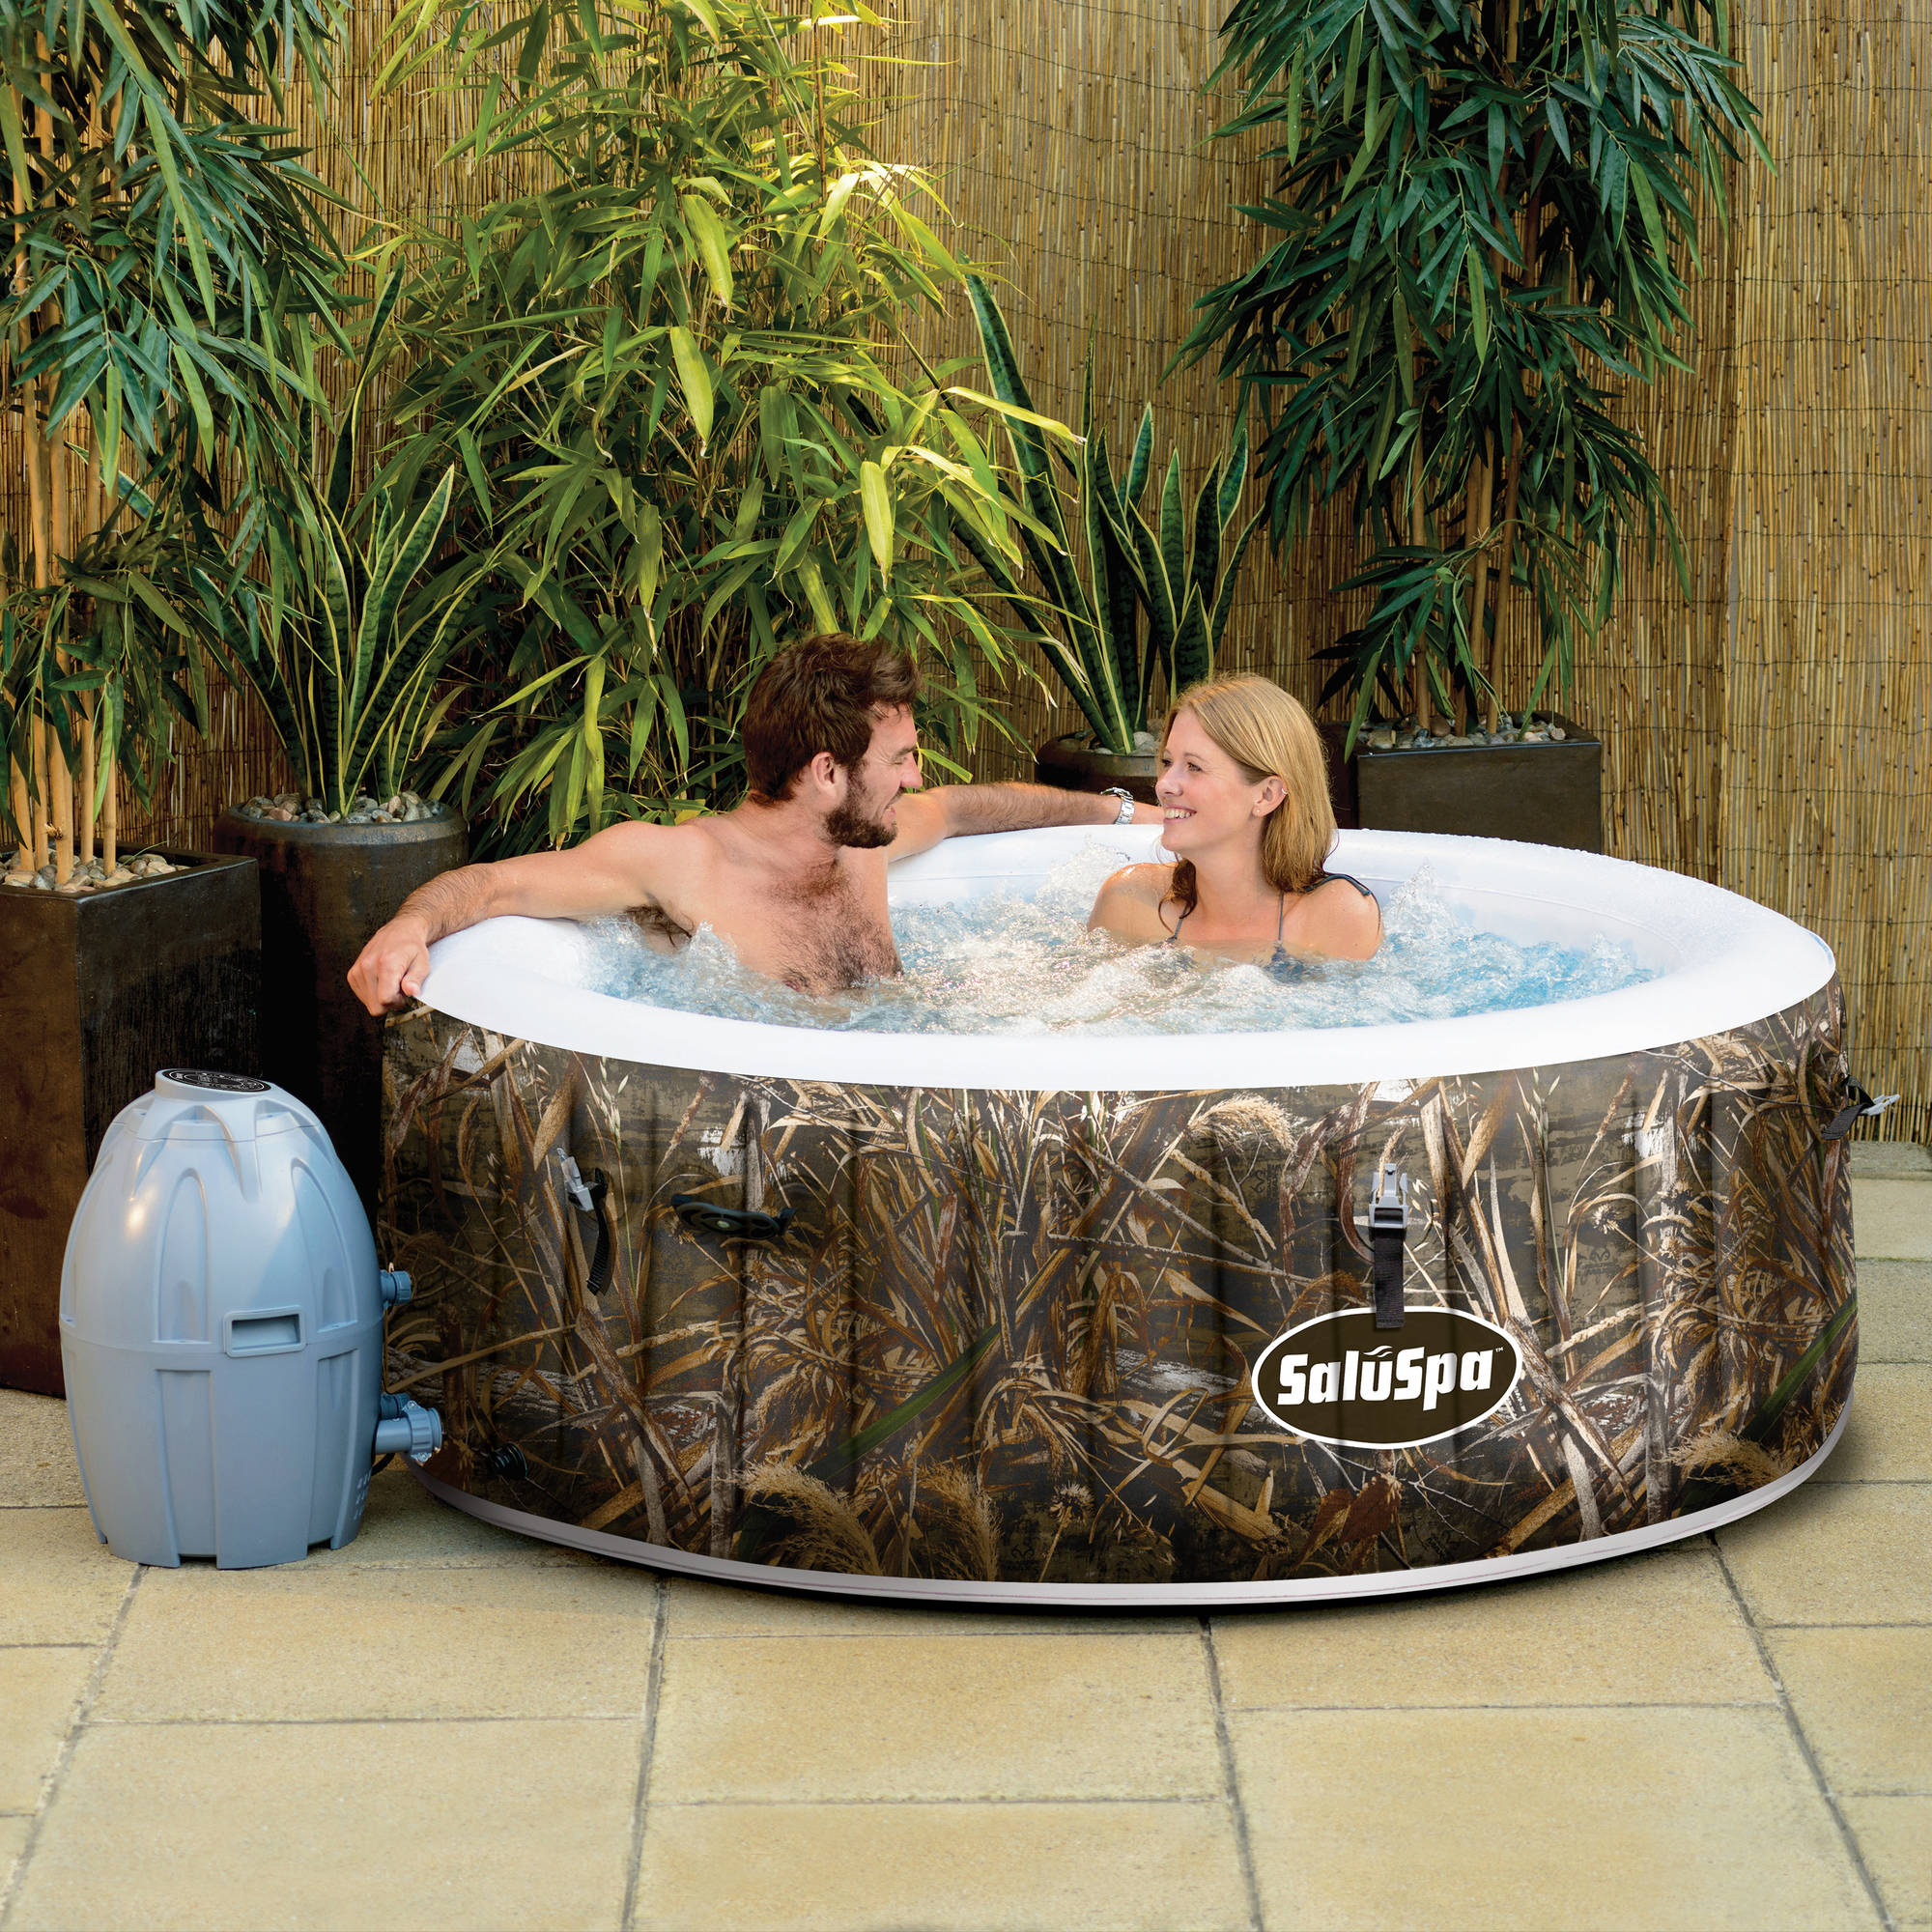 Click here to buy SaluSpa Realtree MAX-5 AirJet 4-Person Portable Inflatable Hot Tub Spa by Bestway.